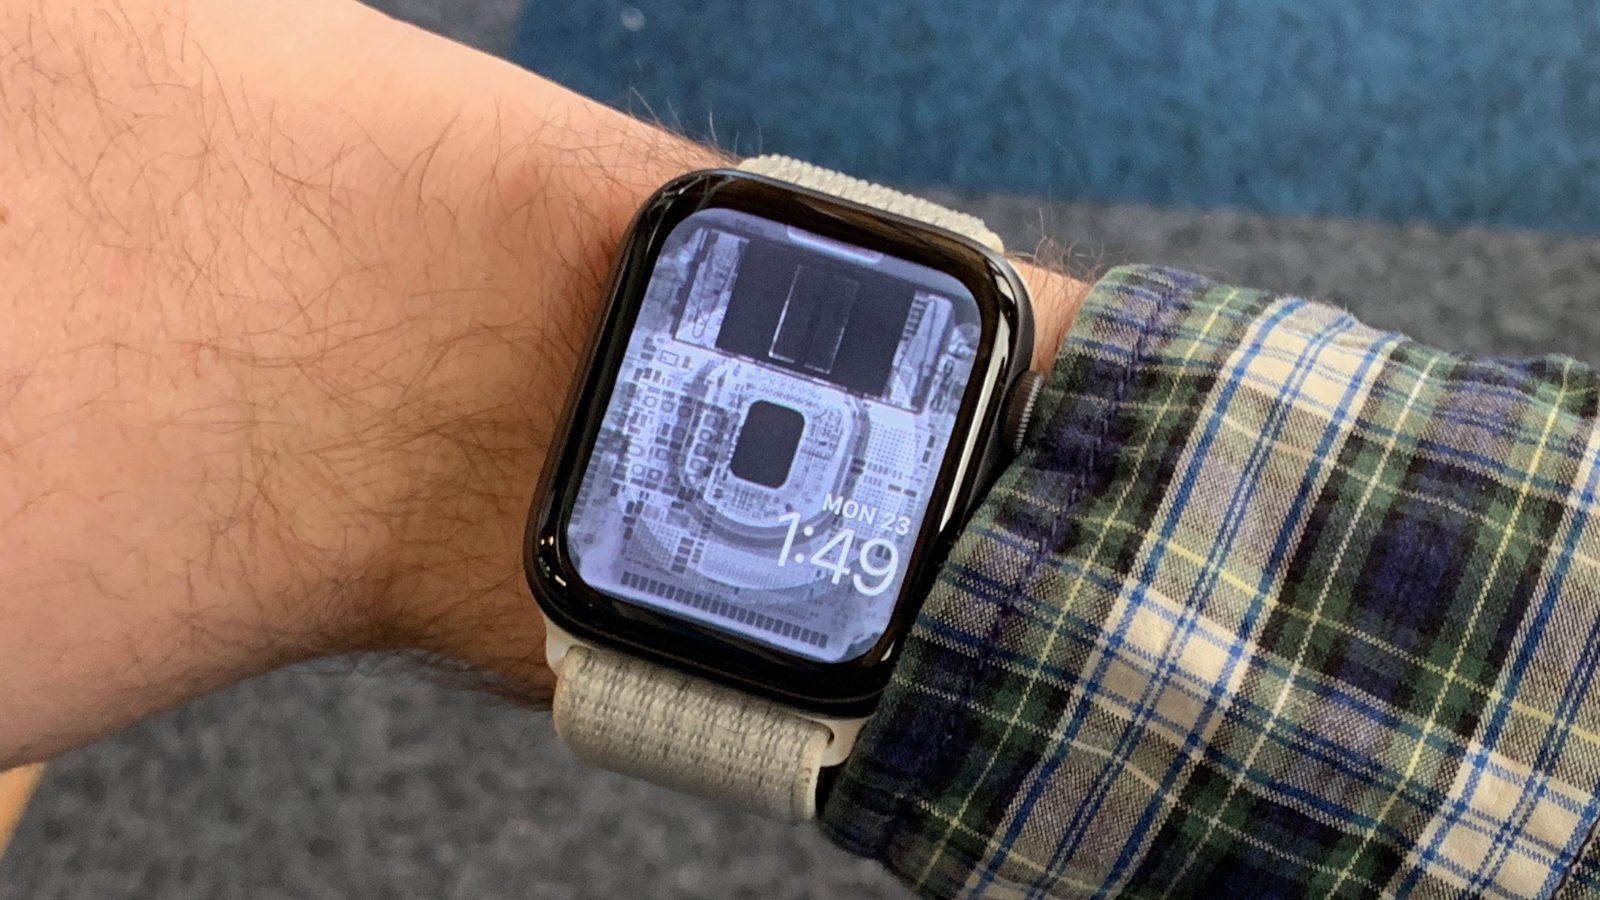 Get a look inside your Apple Watch with iFixit's new X-ray and internal wallpapers